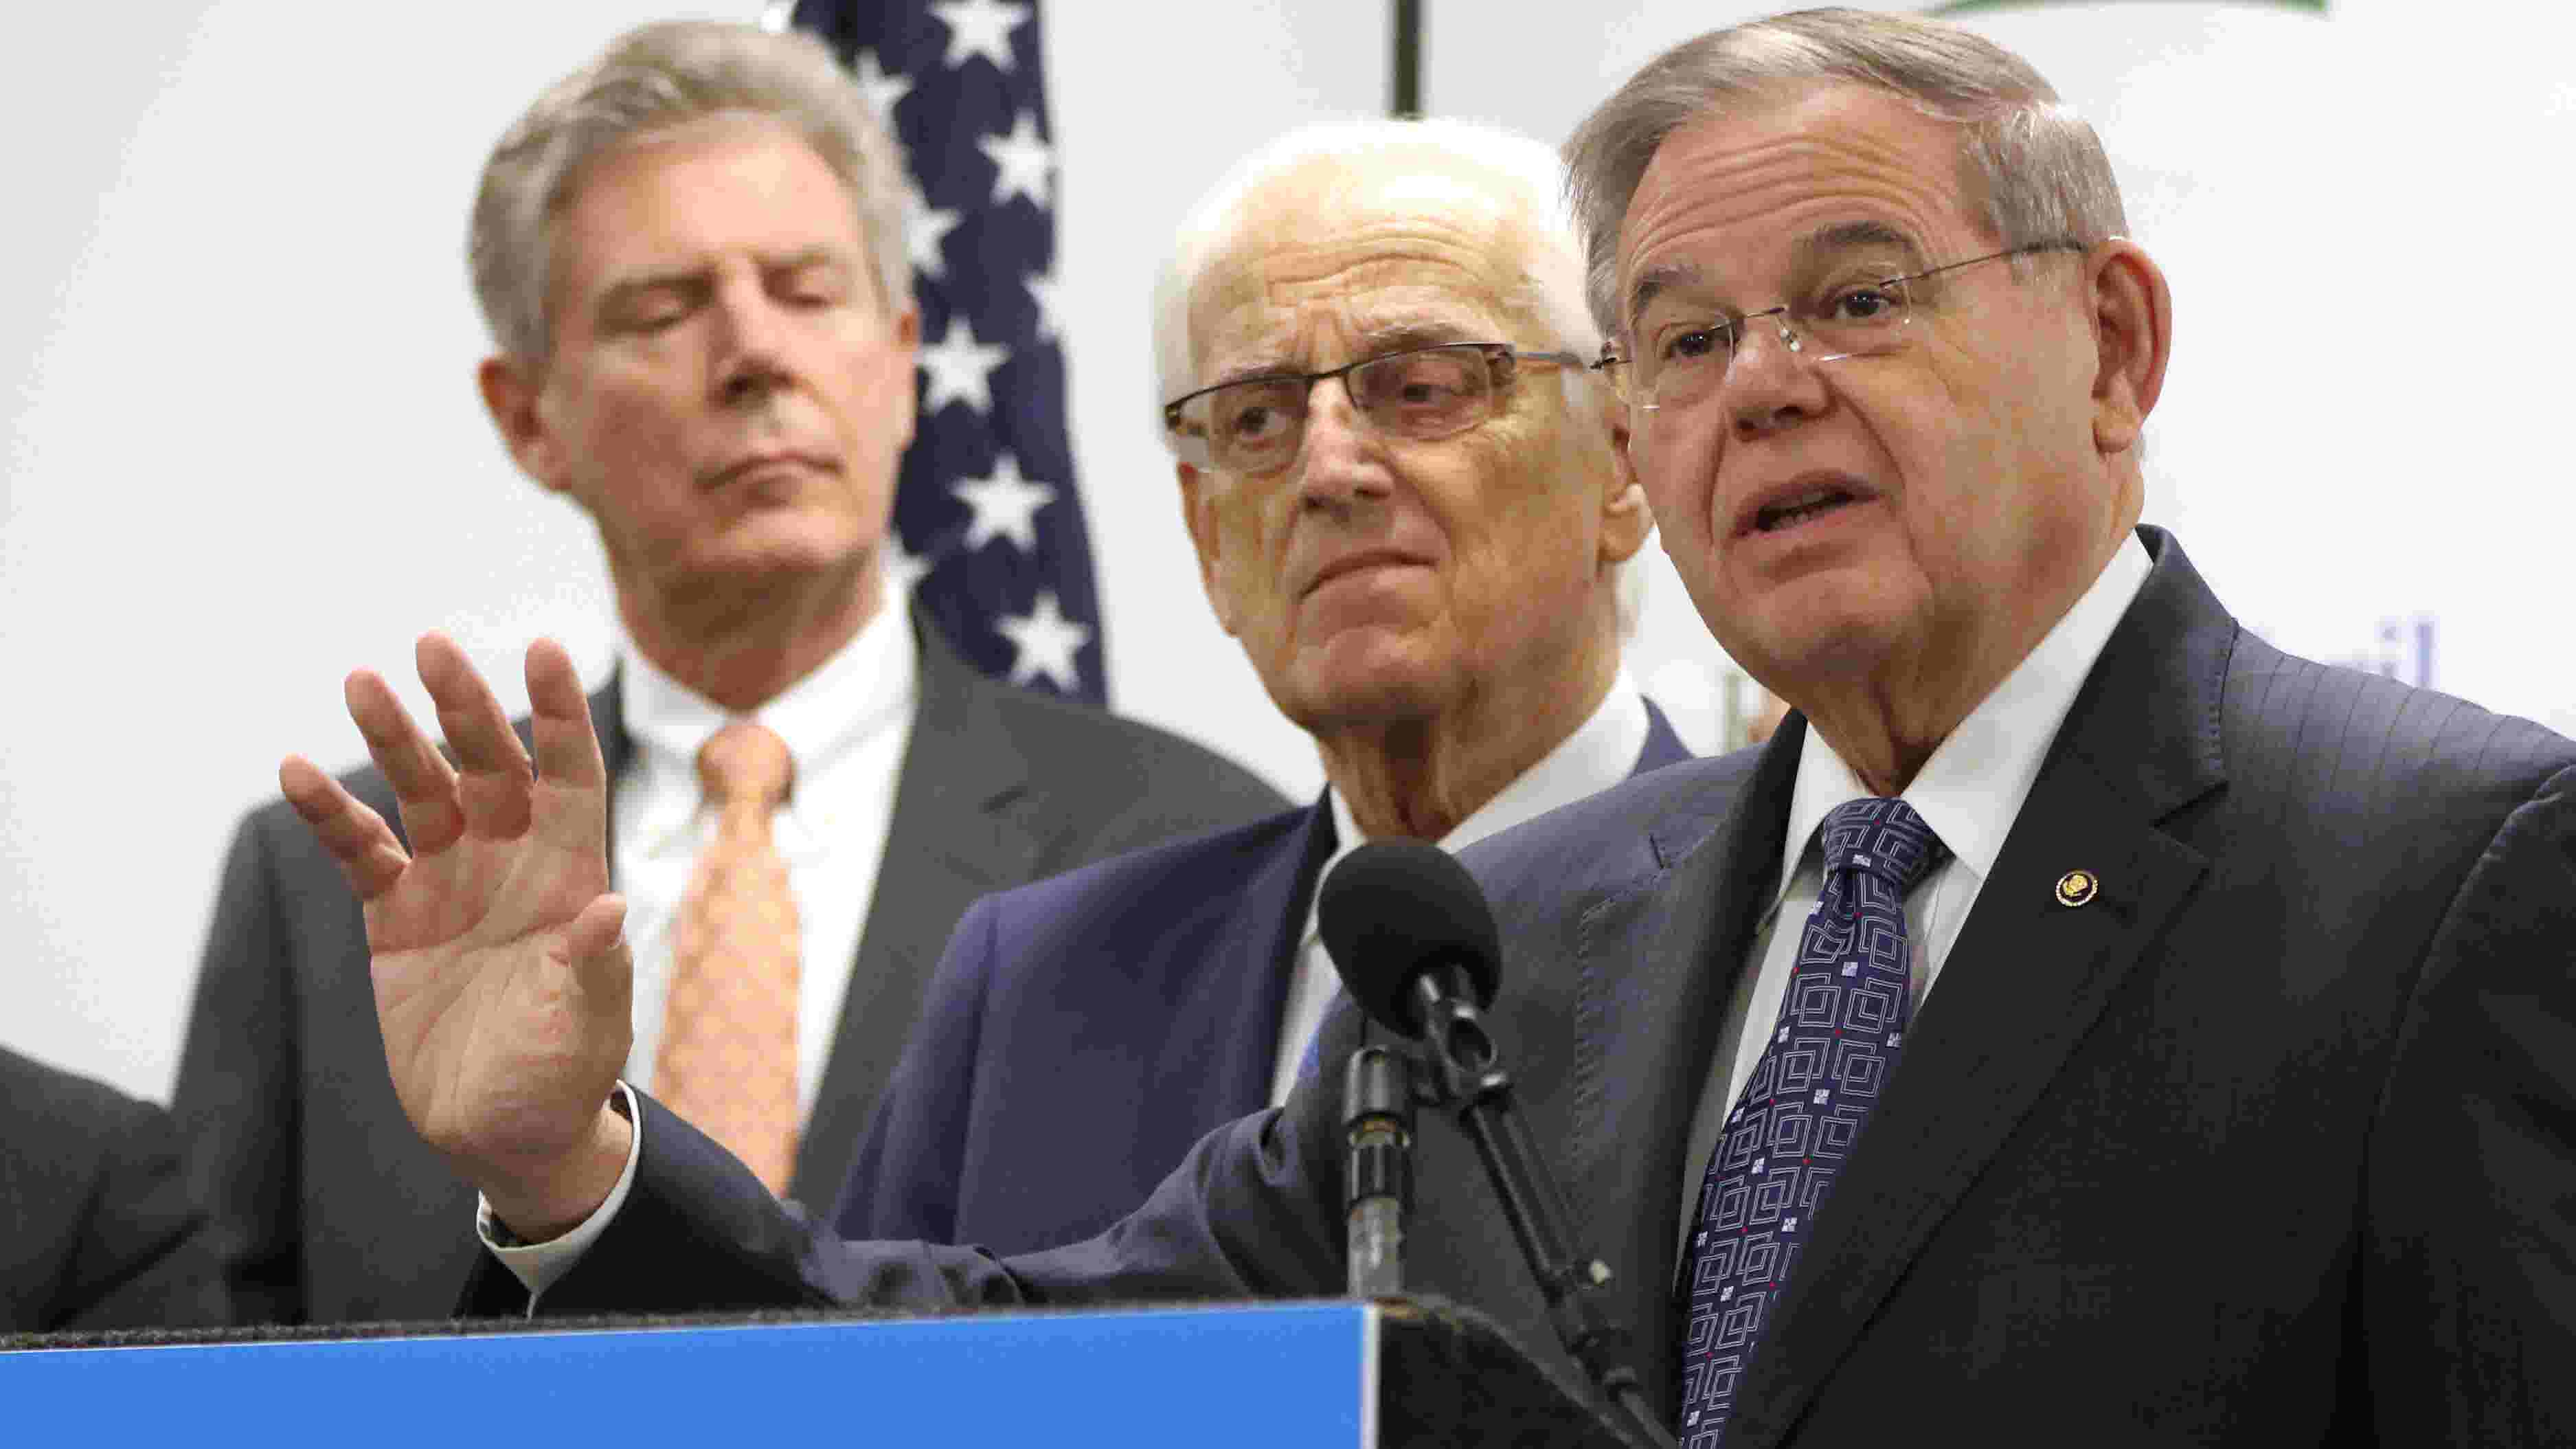 Menendez and Pascrell introduce tax deduction bill